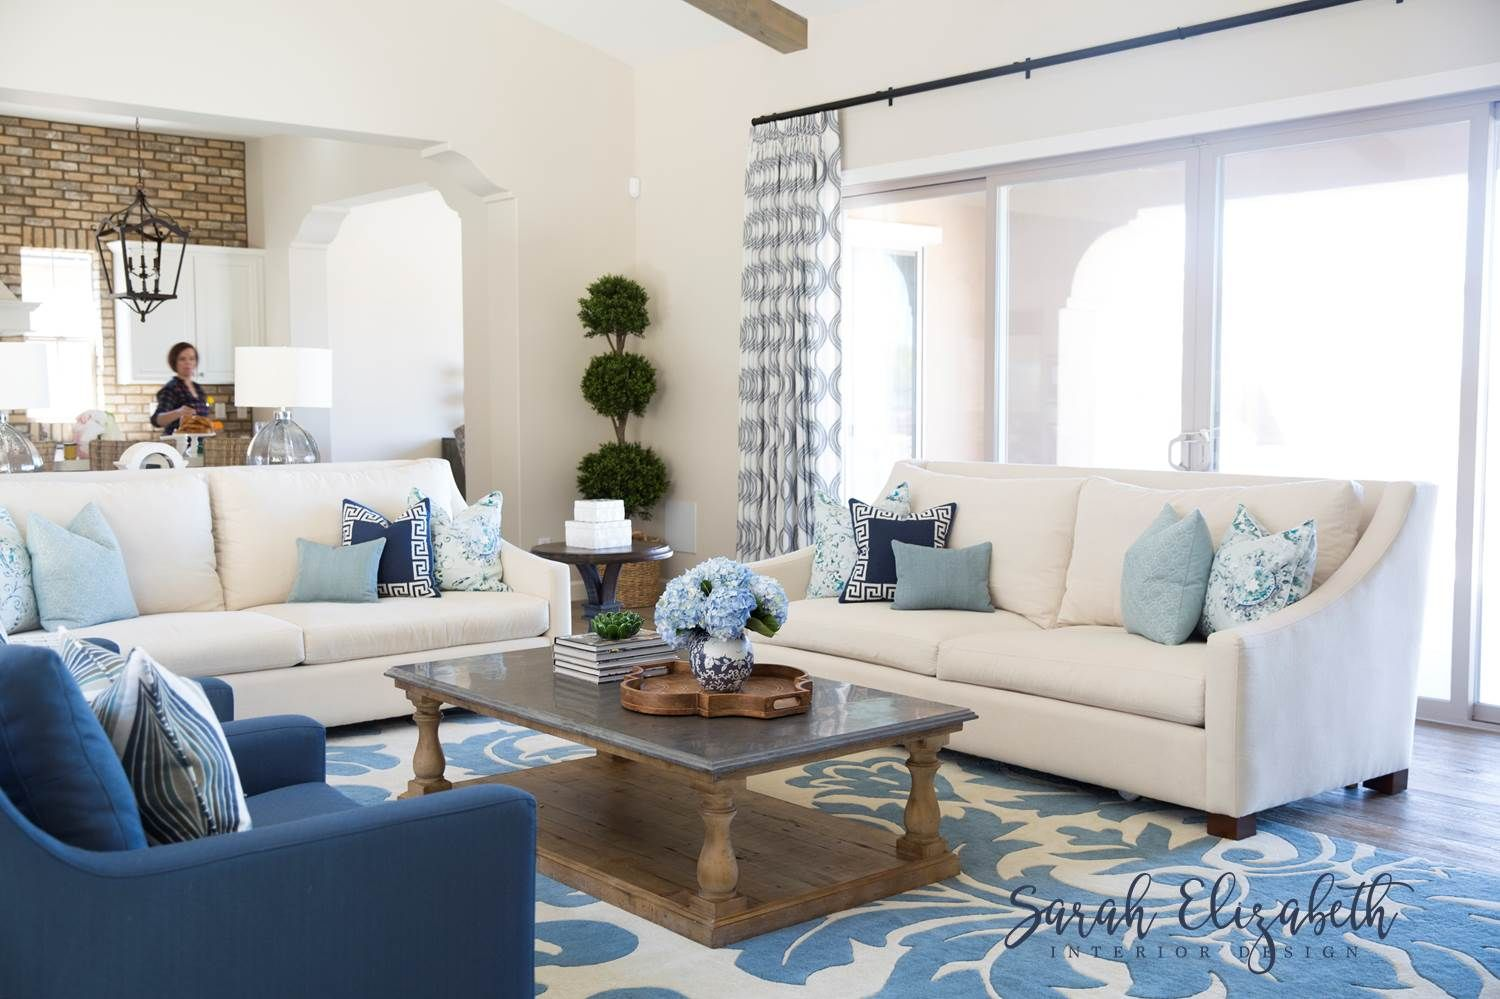 Rustic Family Room Classic Rustic Family Room In Shades Of Blue By Sarah Elizabeth